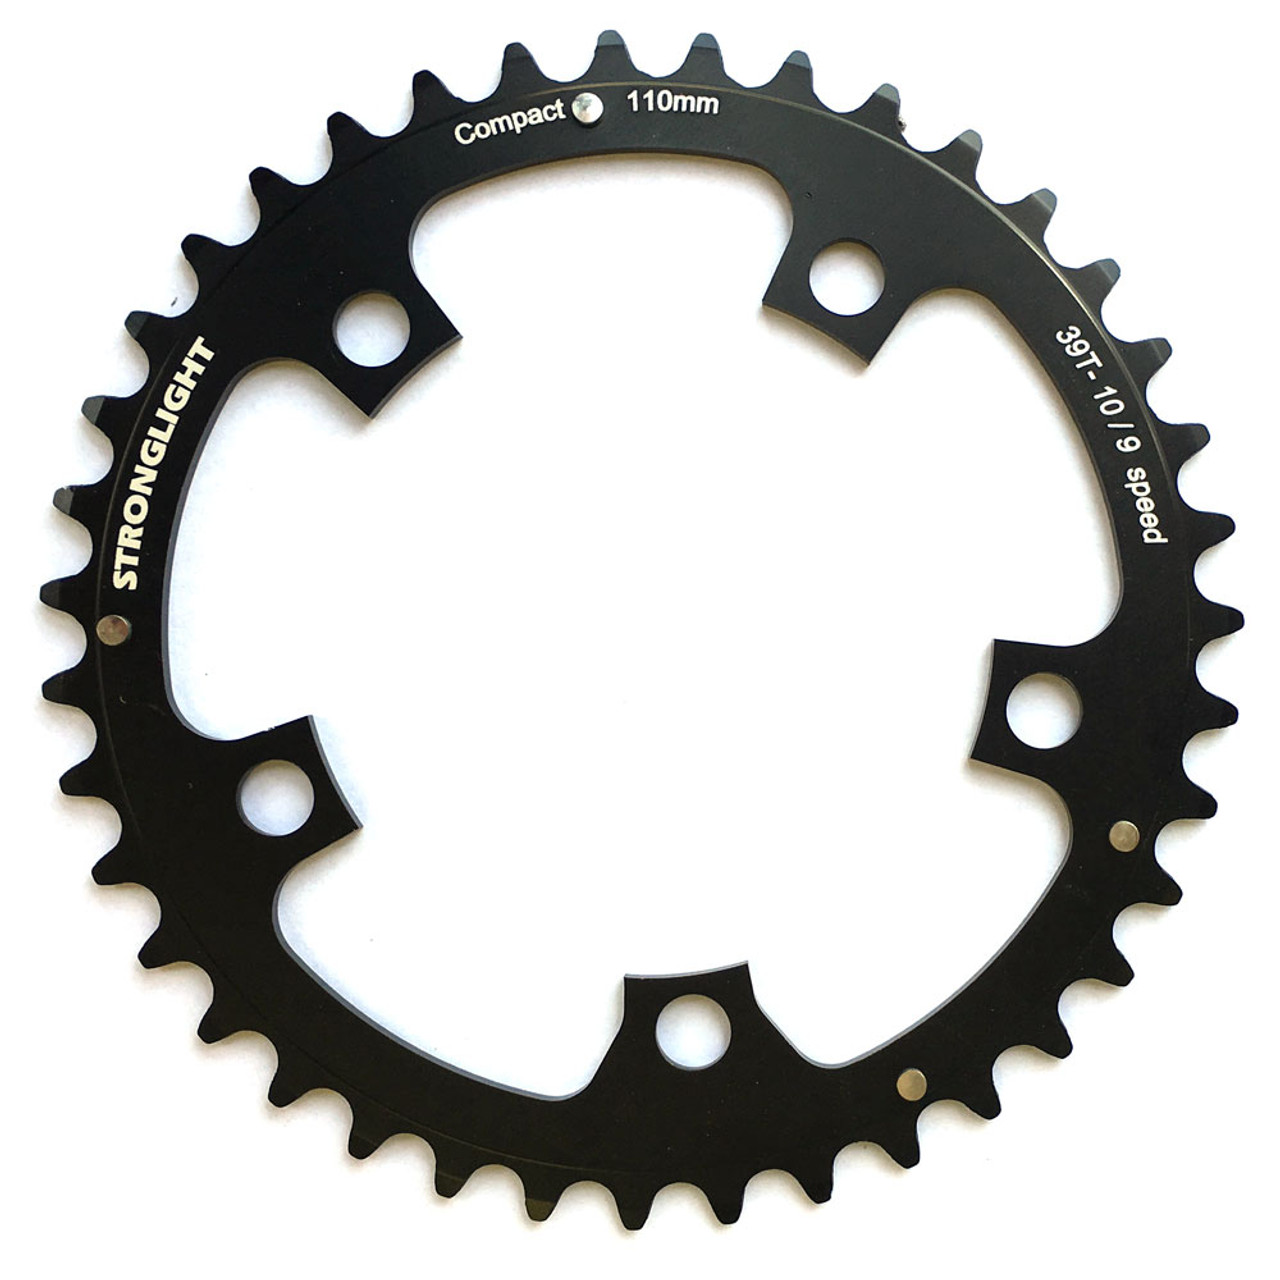 Stronglight Dural 5083 9/10 Speed Chainring | 110mm BCD | Black | All Sizes